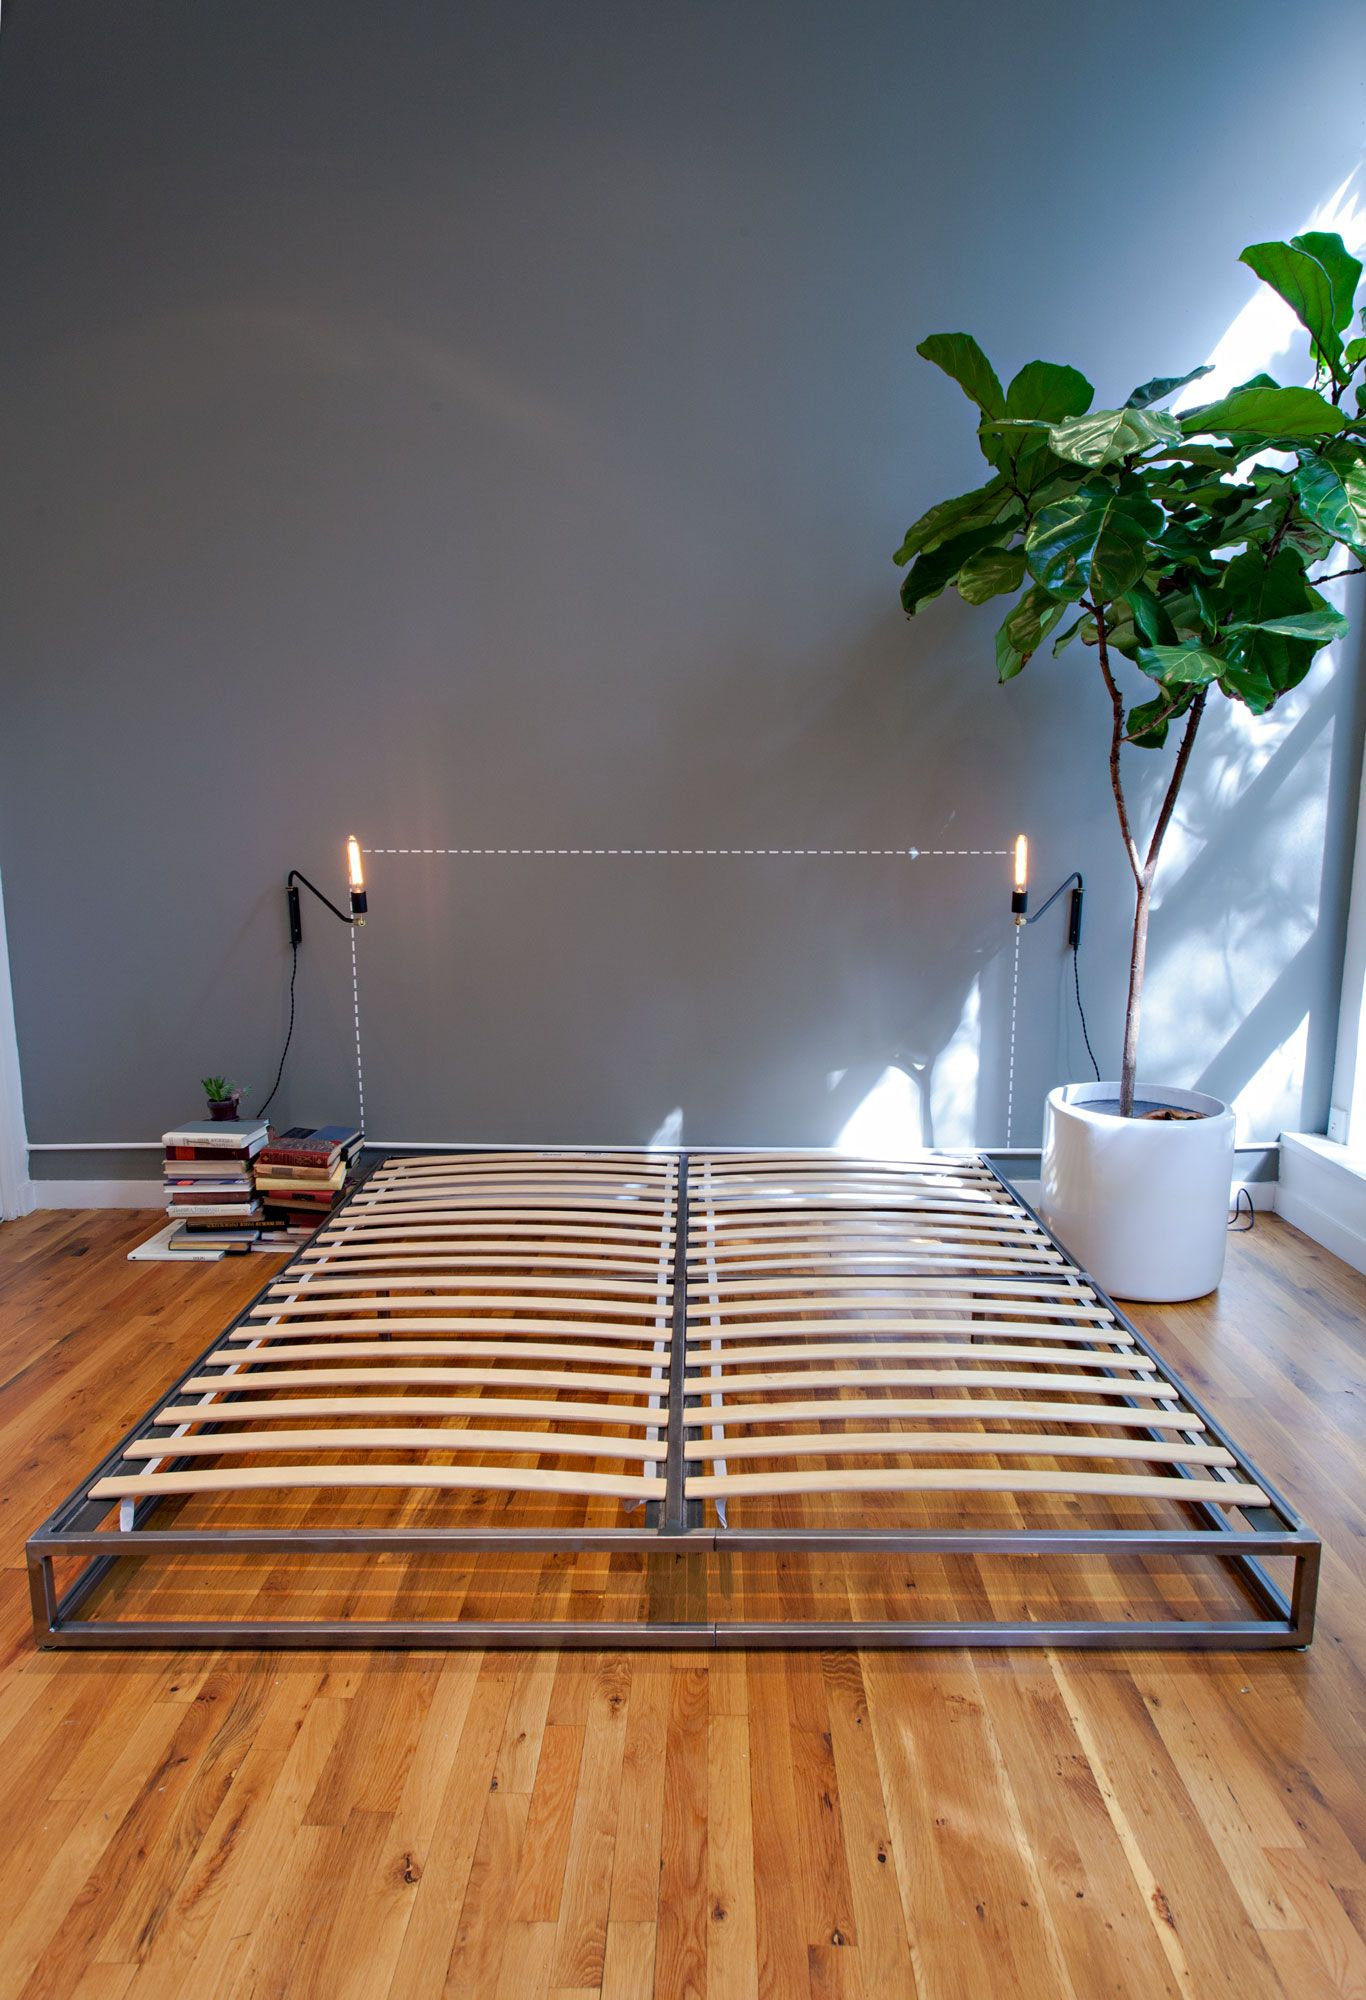 Platform Style Bed Frame, Twin/Full/Queen/King   Gemelo, Plataforma ...